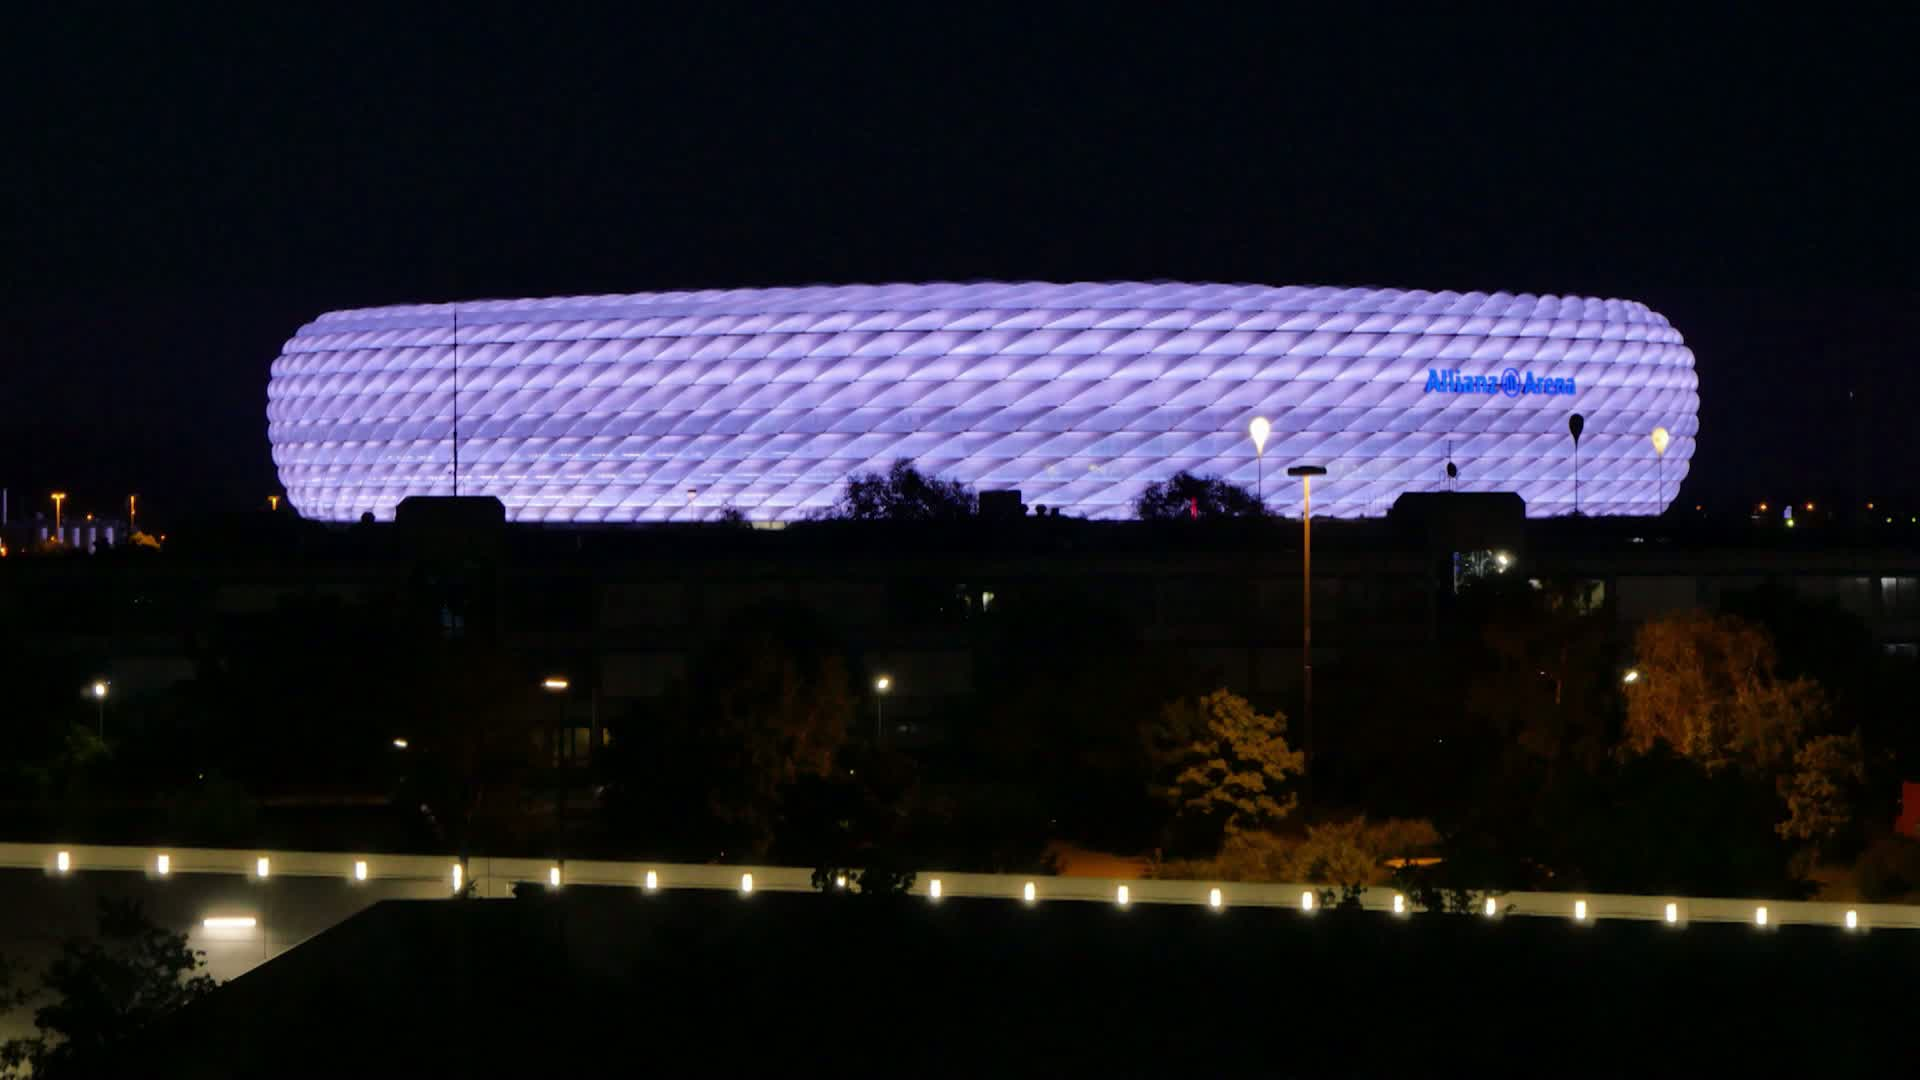 Preparations for the Audi Cup in Munich